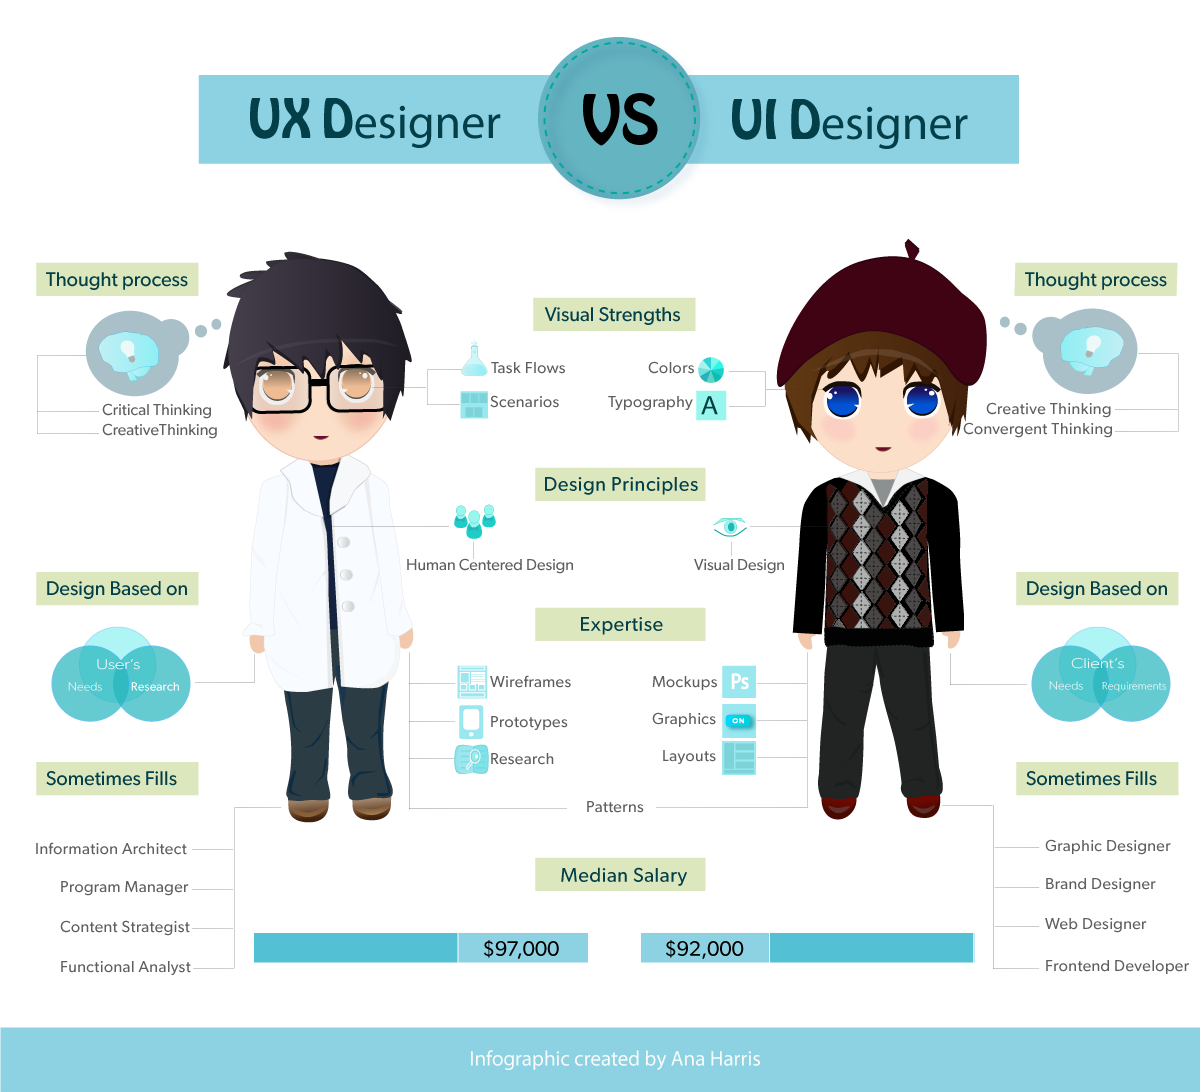 uxd21 ui ux designer information architect